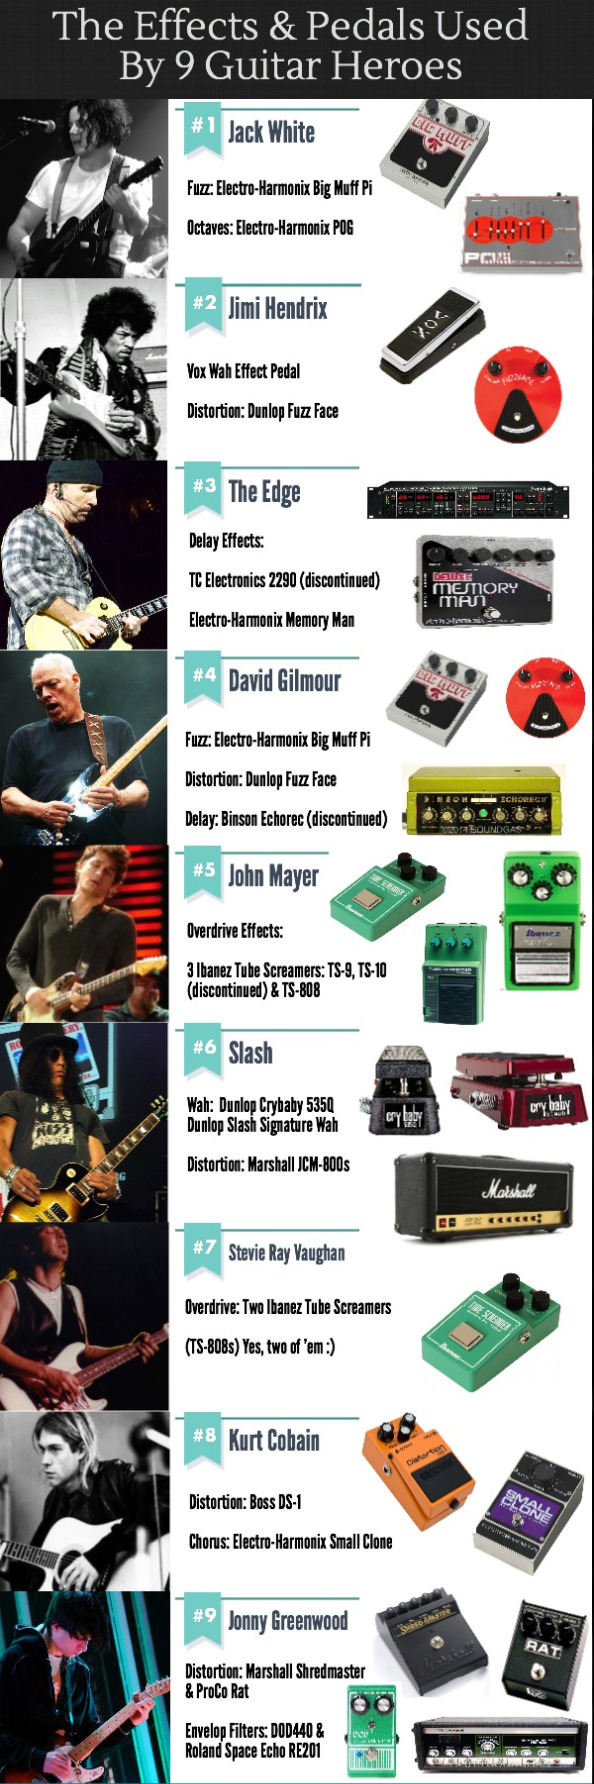 infographic showing the history of the effect pedal